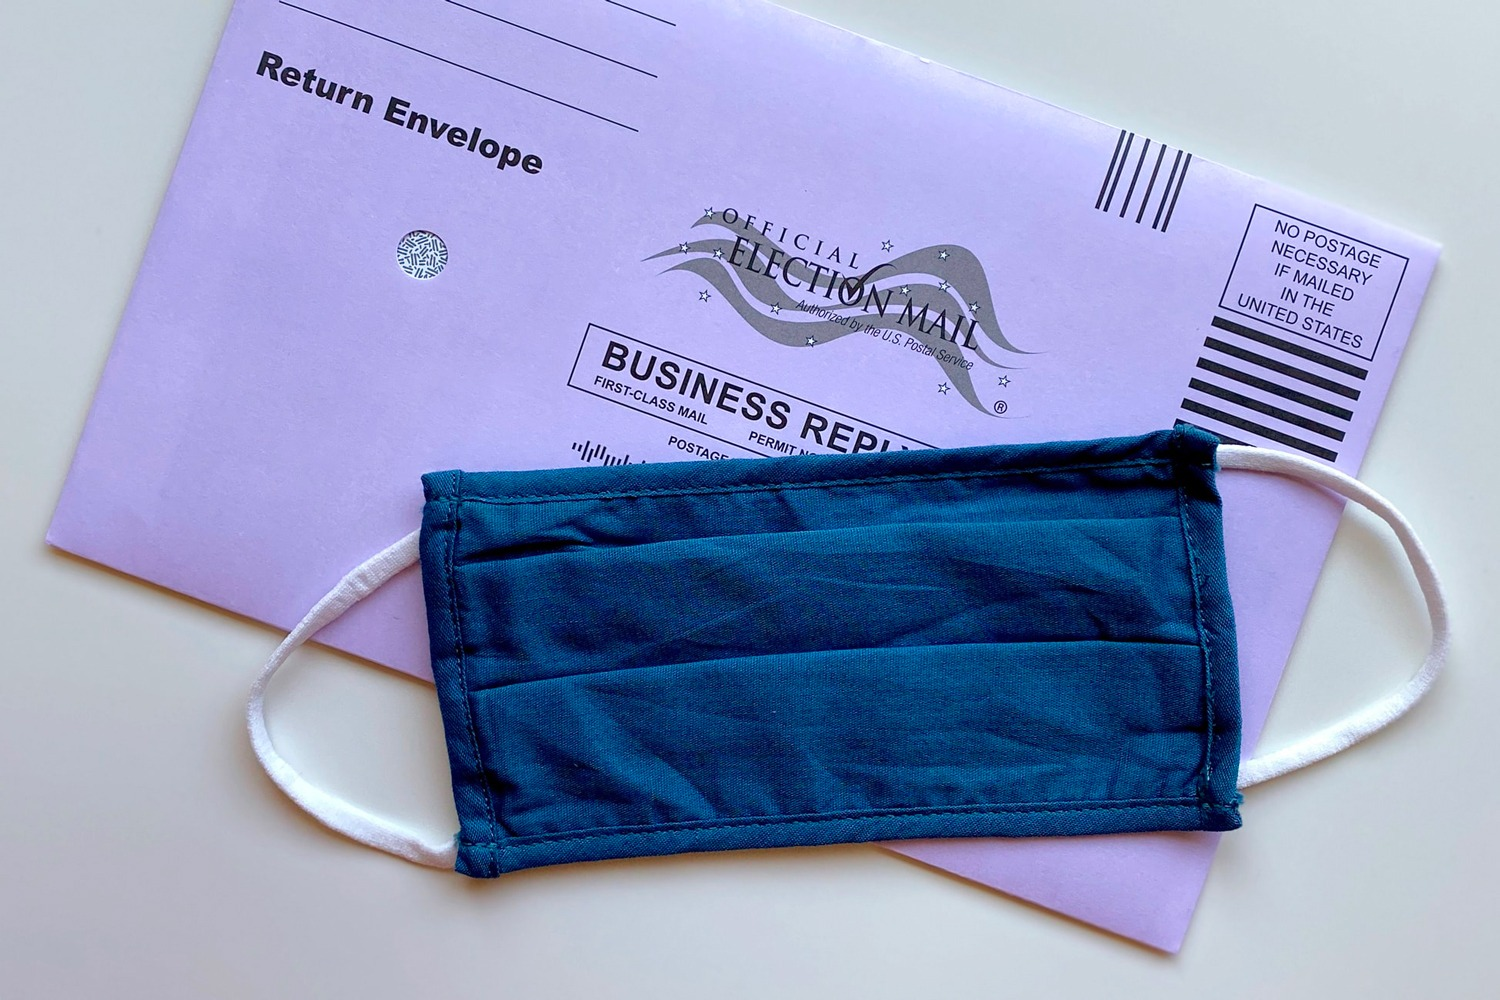 mail-in-ballot-2020-election